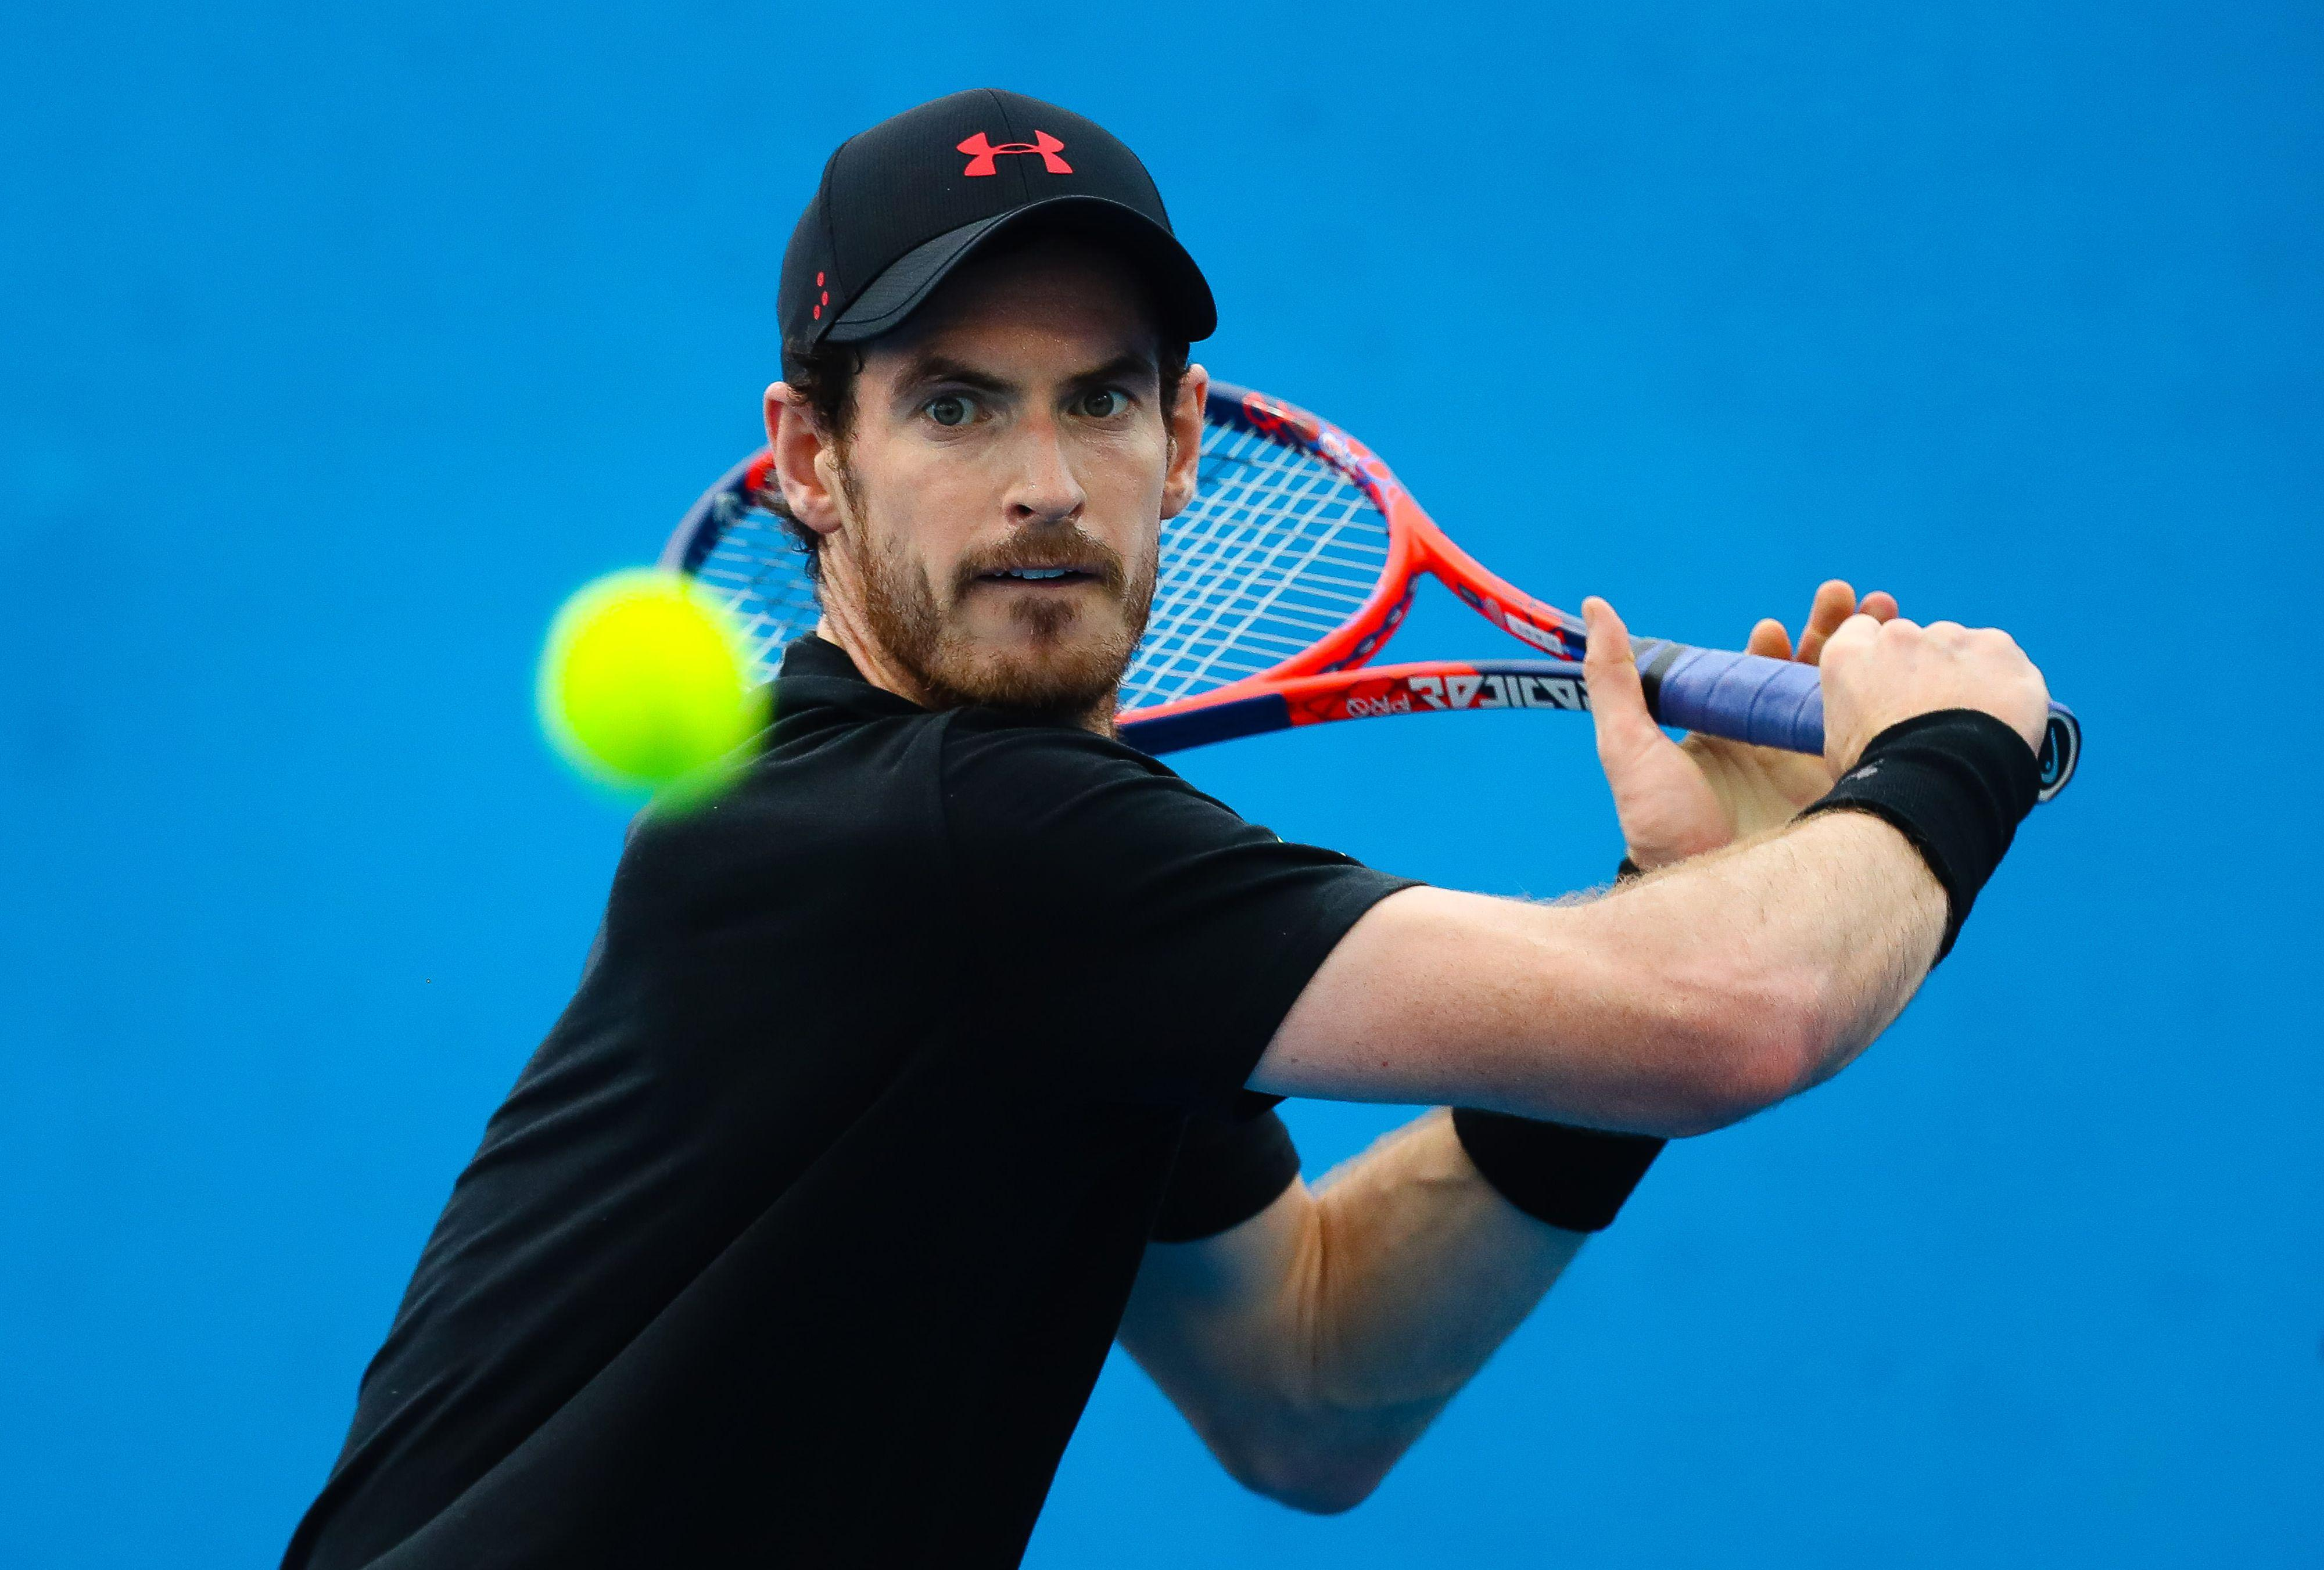 Andy Murray has dropped to 19th in the ATP rankings